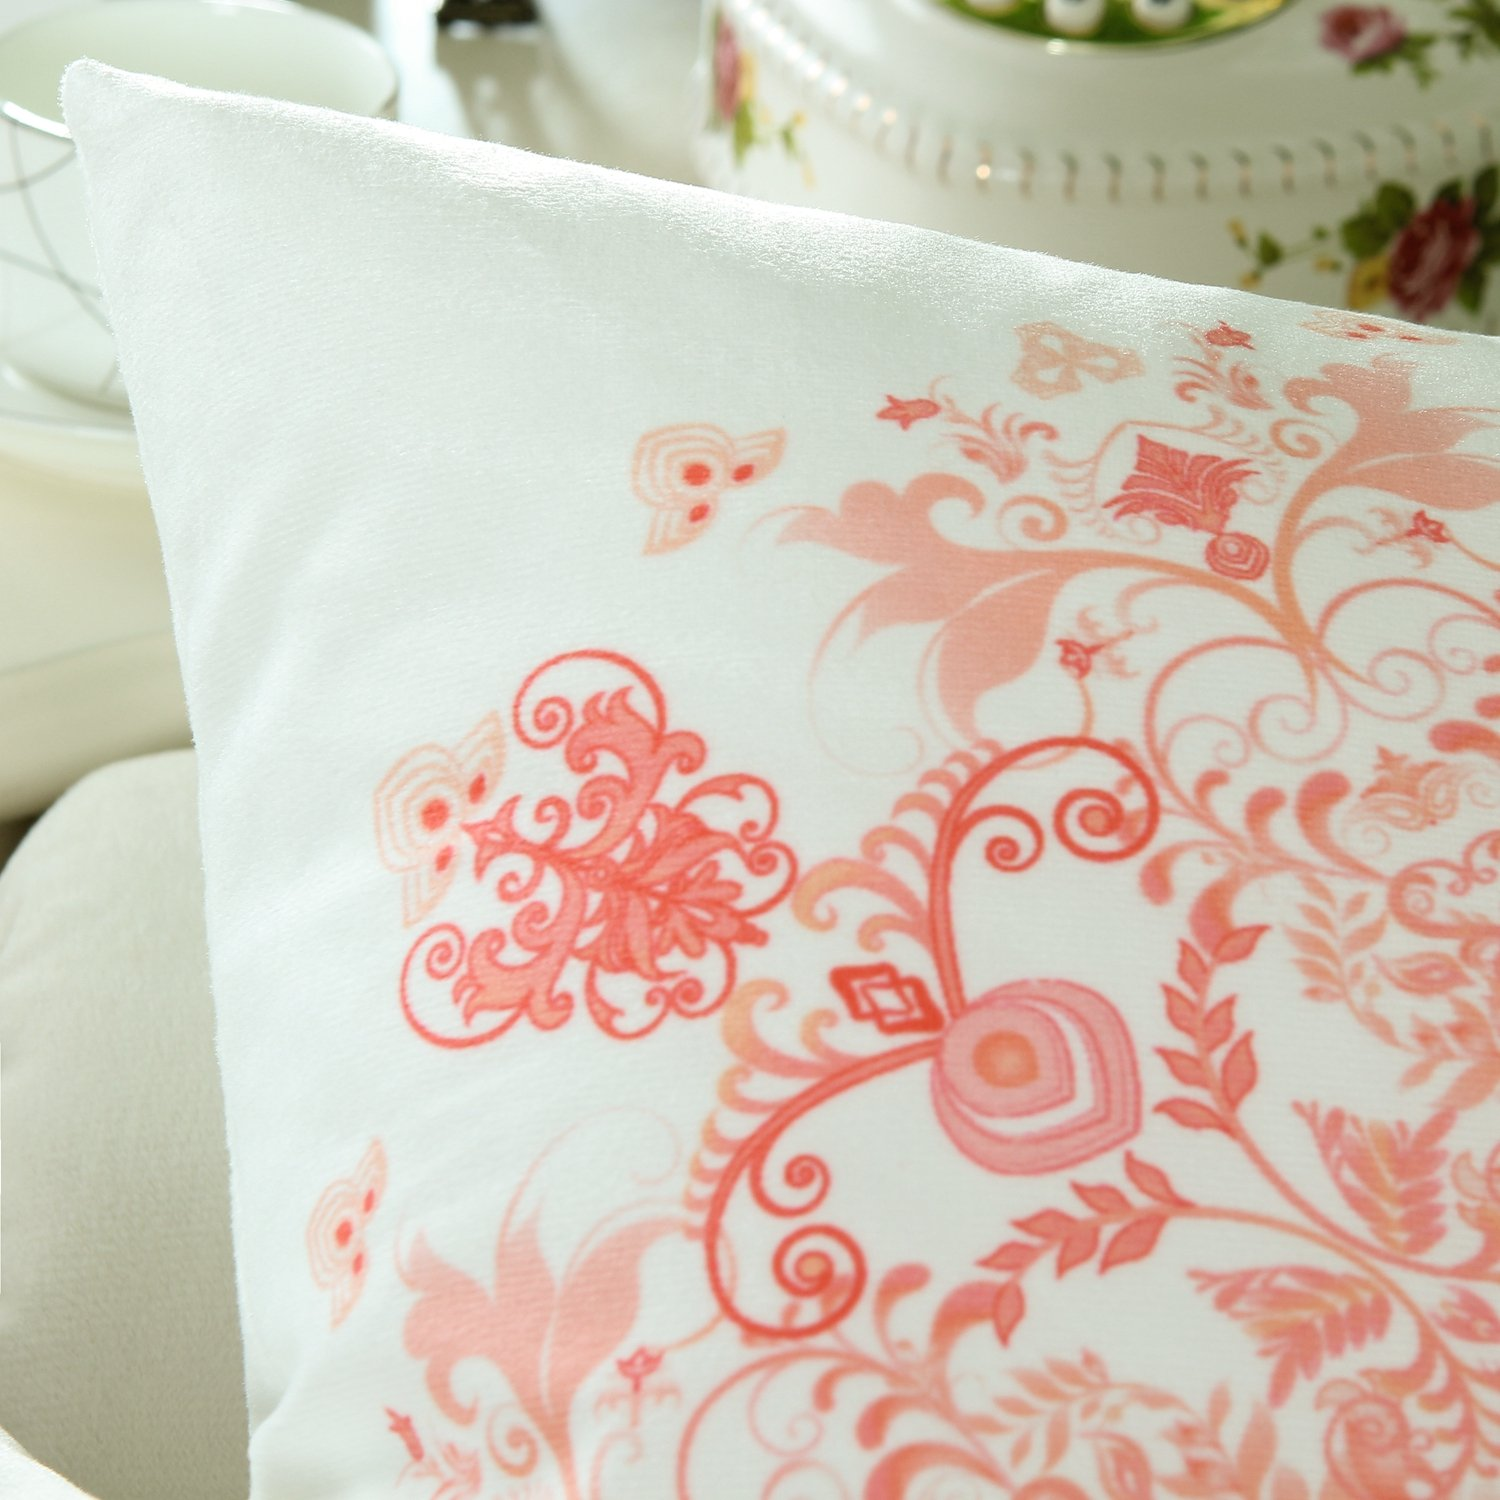 Pack 2 CaliTime Cushion Covers Throw Pillows Cases Shells, Vintage Mandala Floral Peach Pink